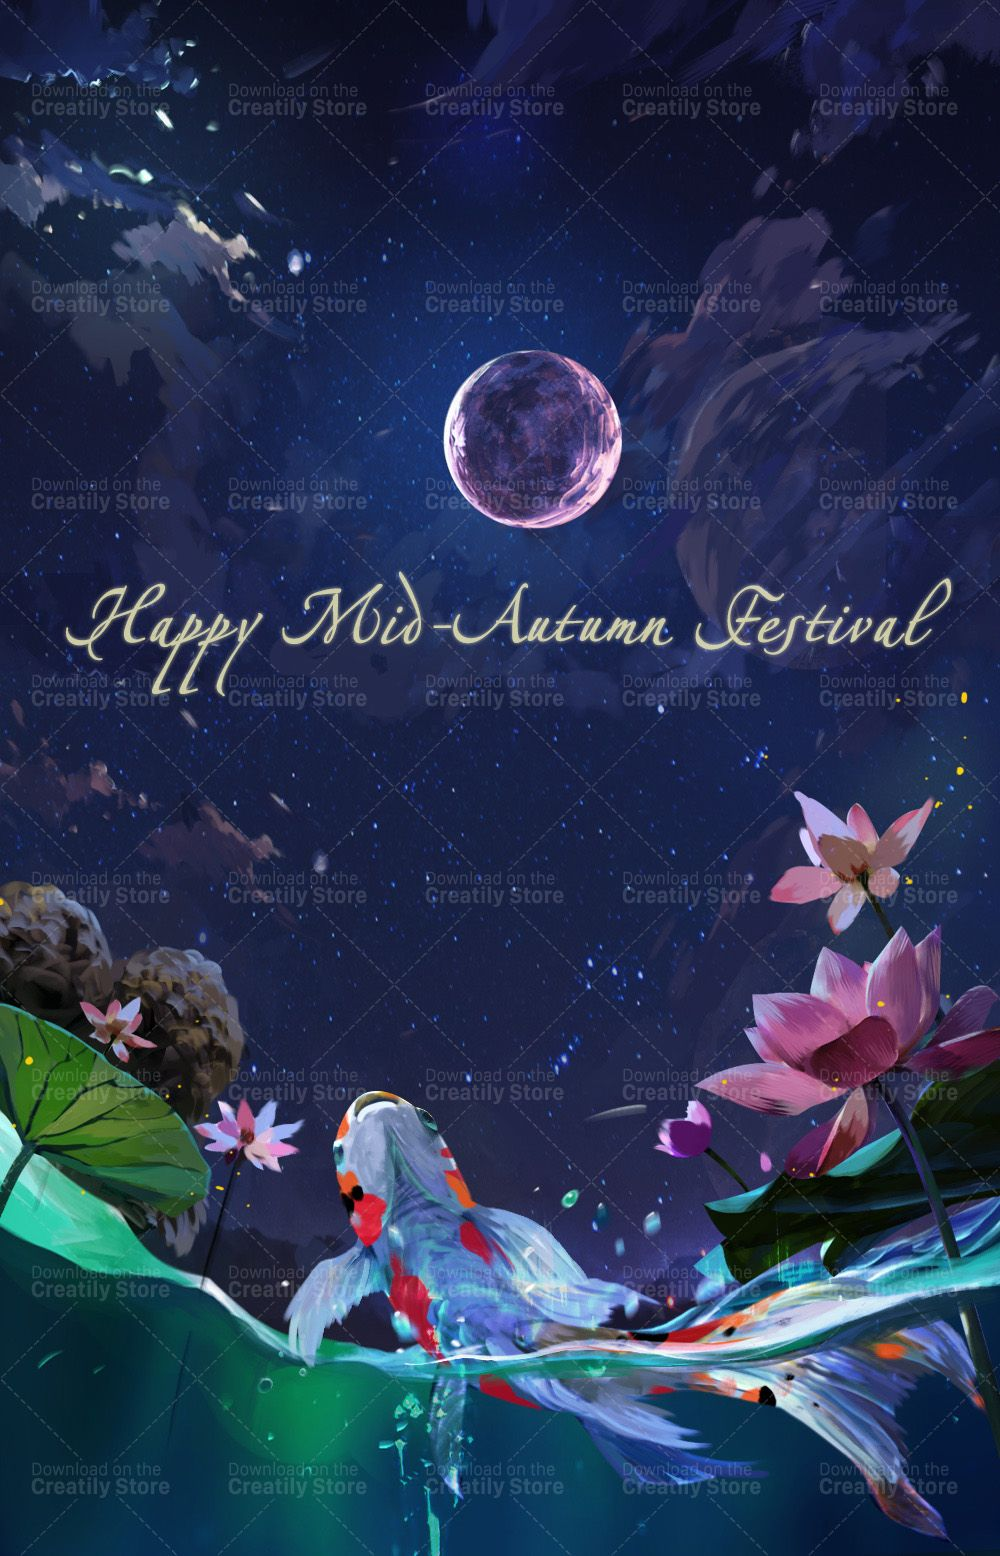 Mid Autumn Festival Vector Psd Template Xcreative Mid Autumn Festival Happy Mid Autumn Festival Autumn Moon Festival